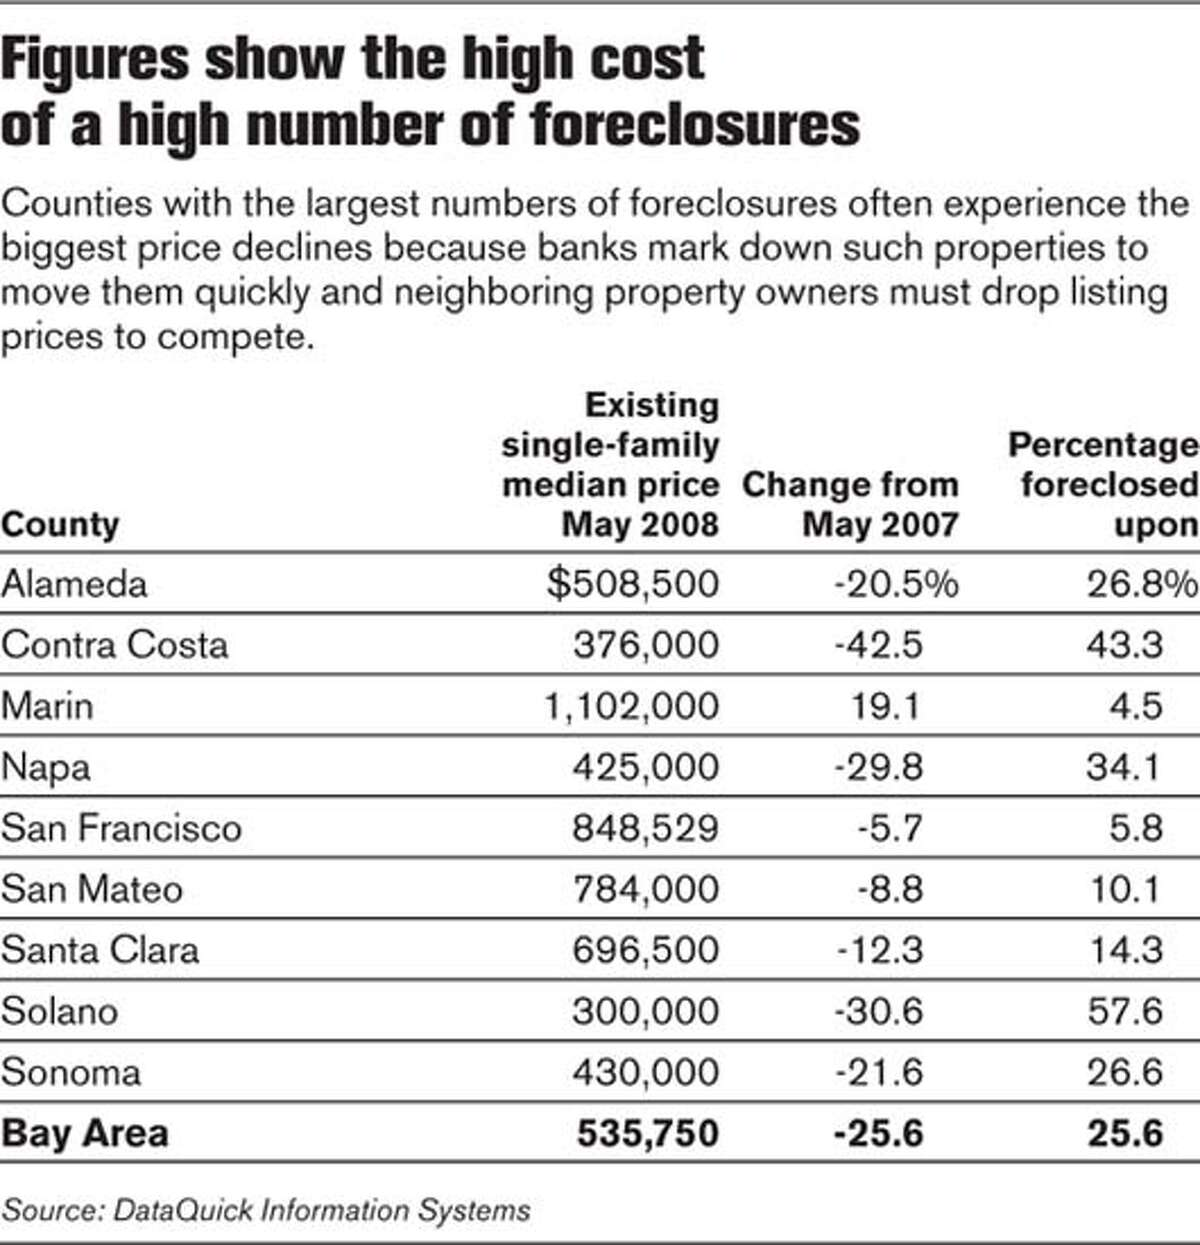 Figures show the high cost of a high number of foreclosures. Chronicle Graphic